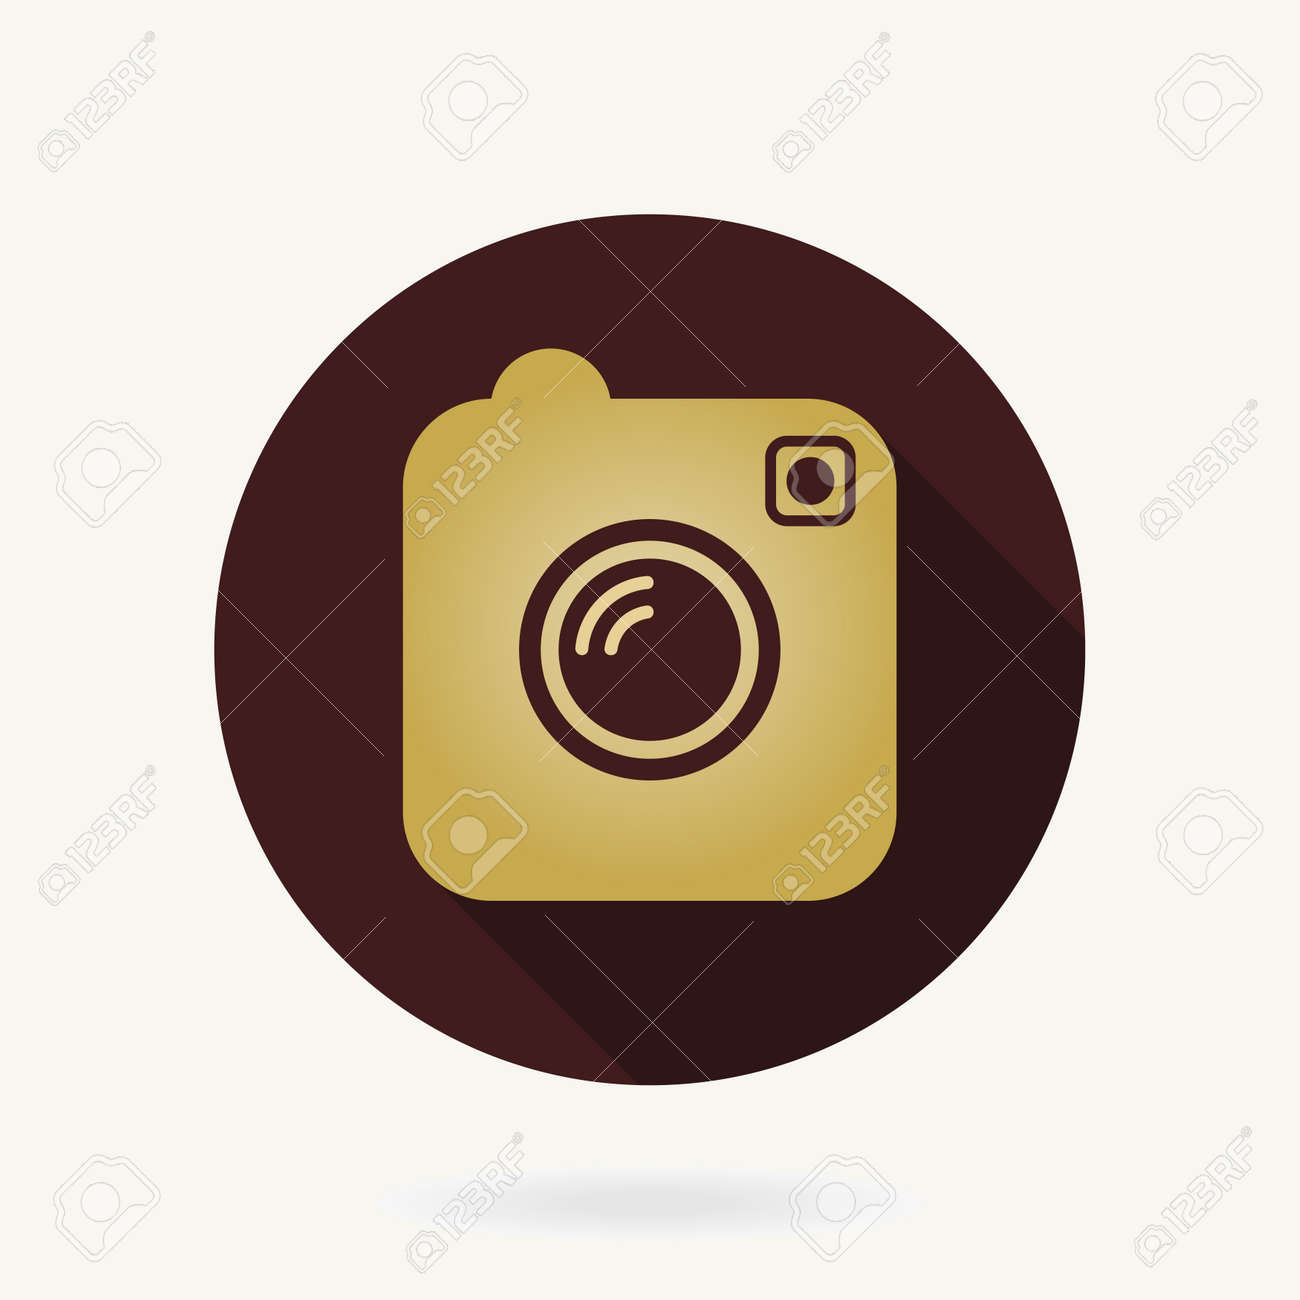 Camera Golden Flat Icon With Long Shadow - 167039511